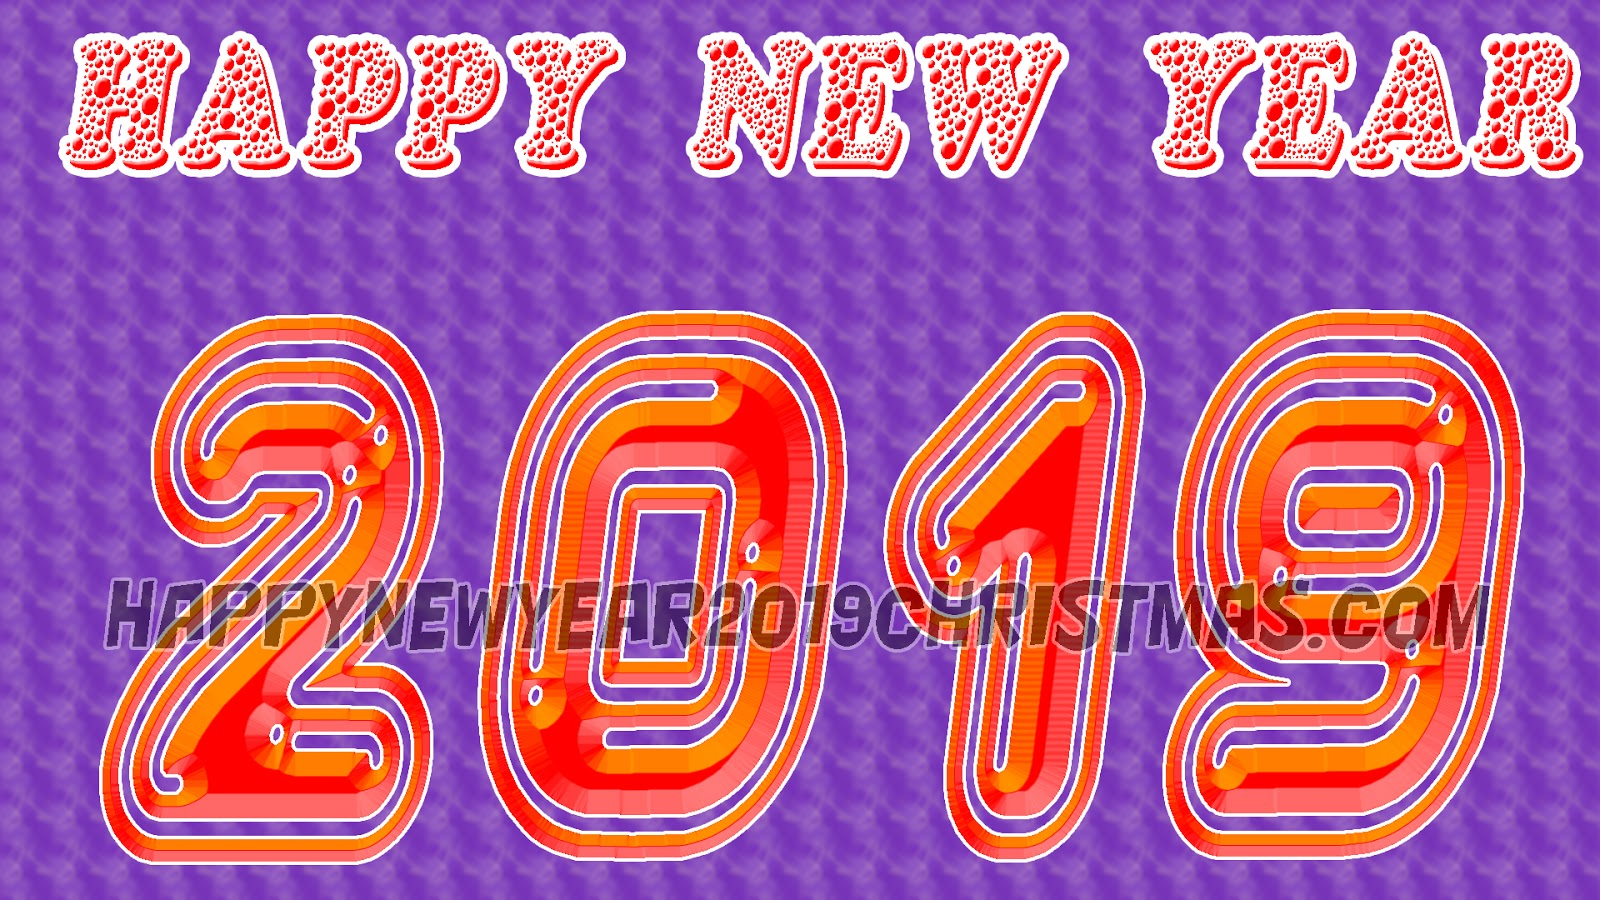 Happy New Year 2019 Sms Messages Happy New Year 2019 Images